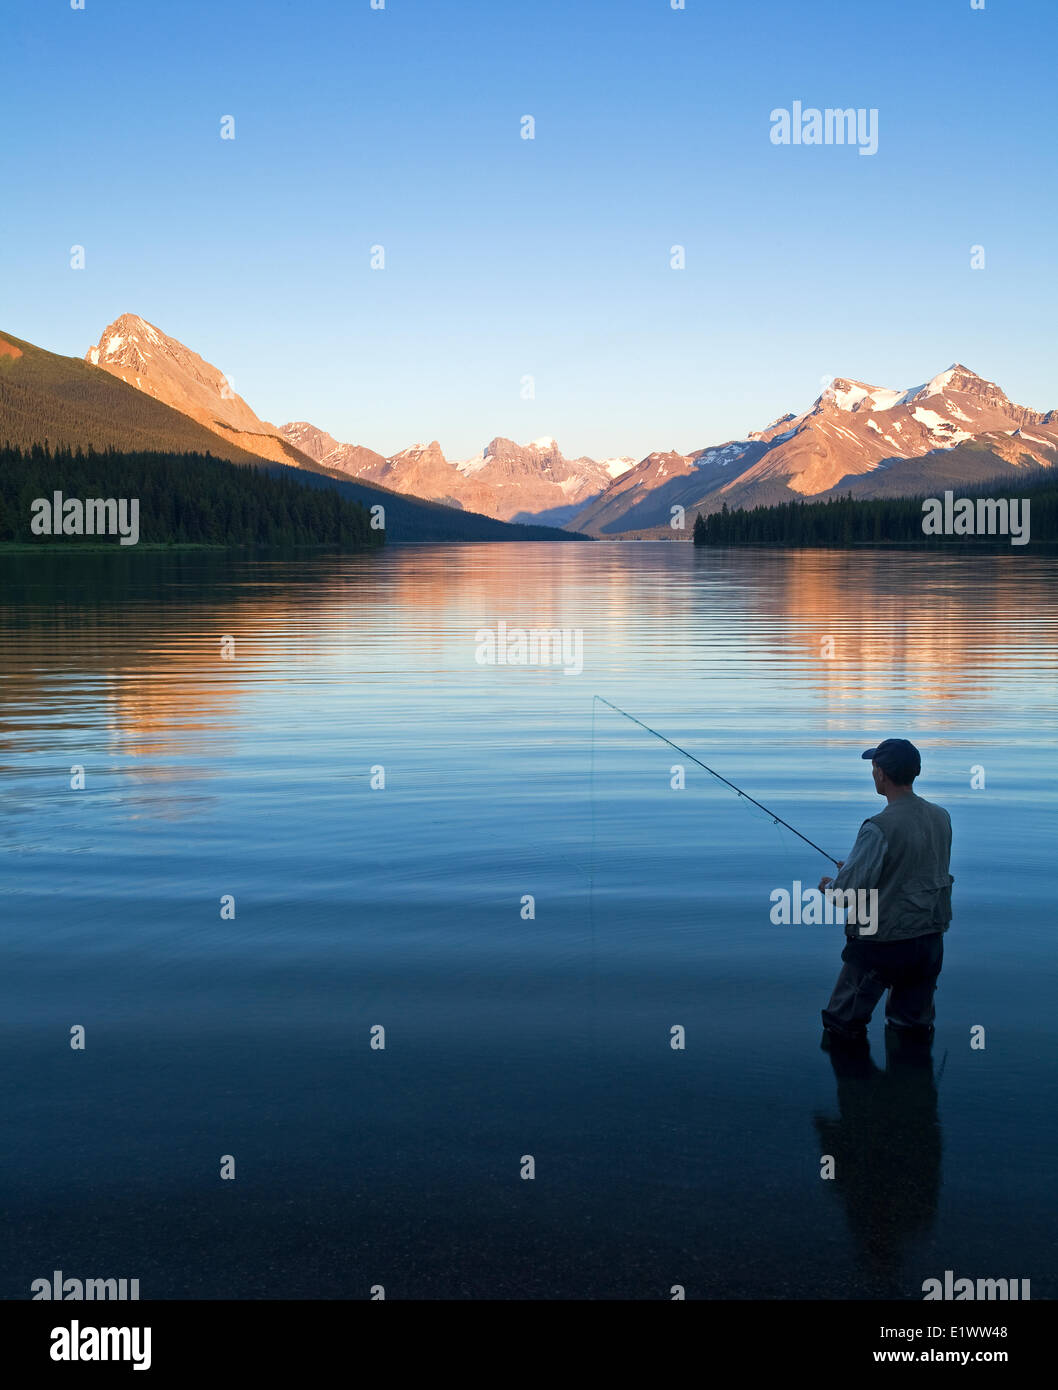 Middle age male fly fishing on Maligne Lake, Jasper National Park, Alberta, Canada. Stock Photo